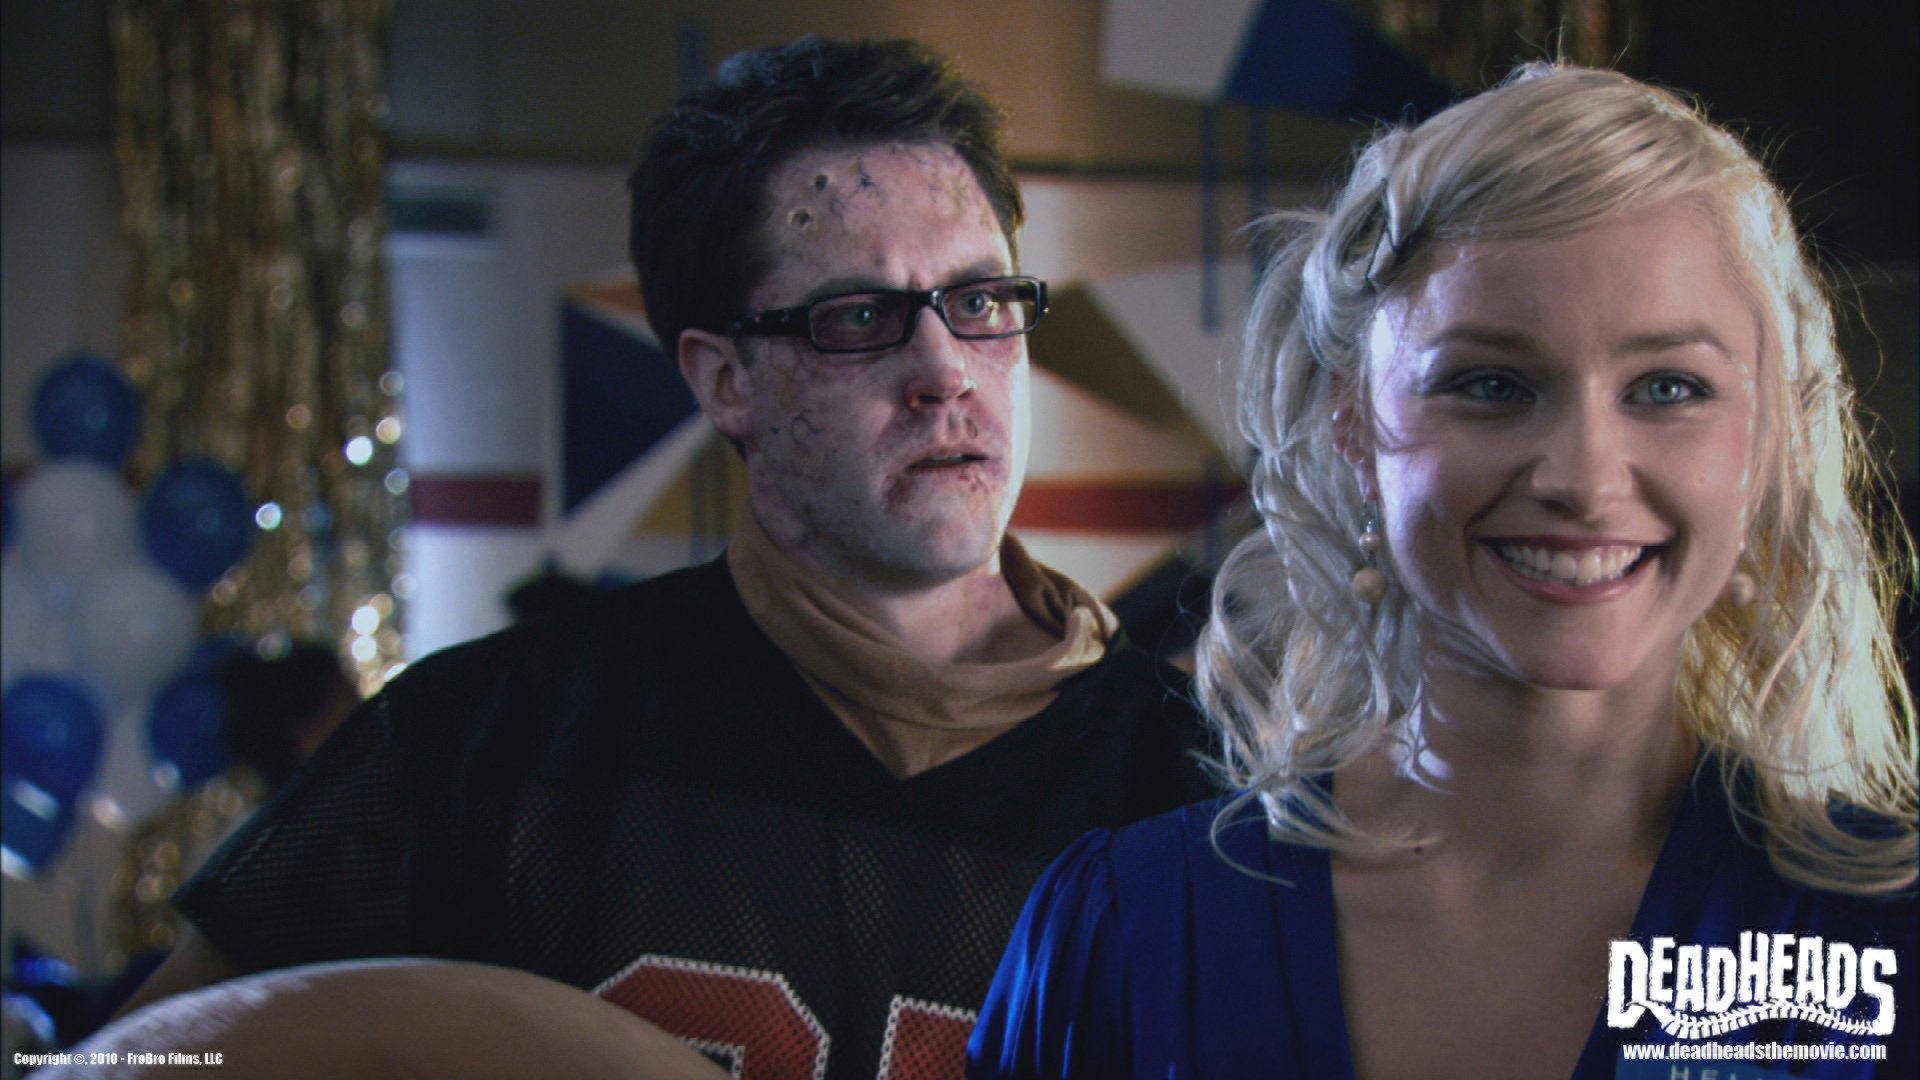 Michael McKiddy and Natalie Victoria in Deadheads (2011)